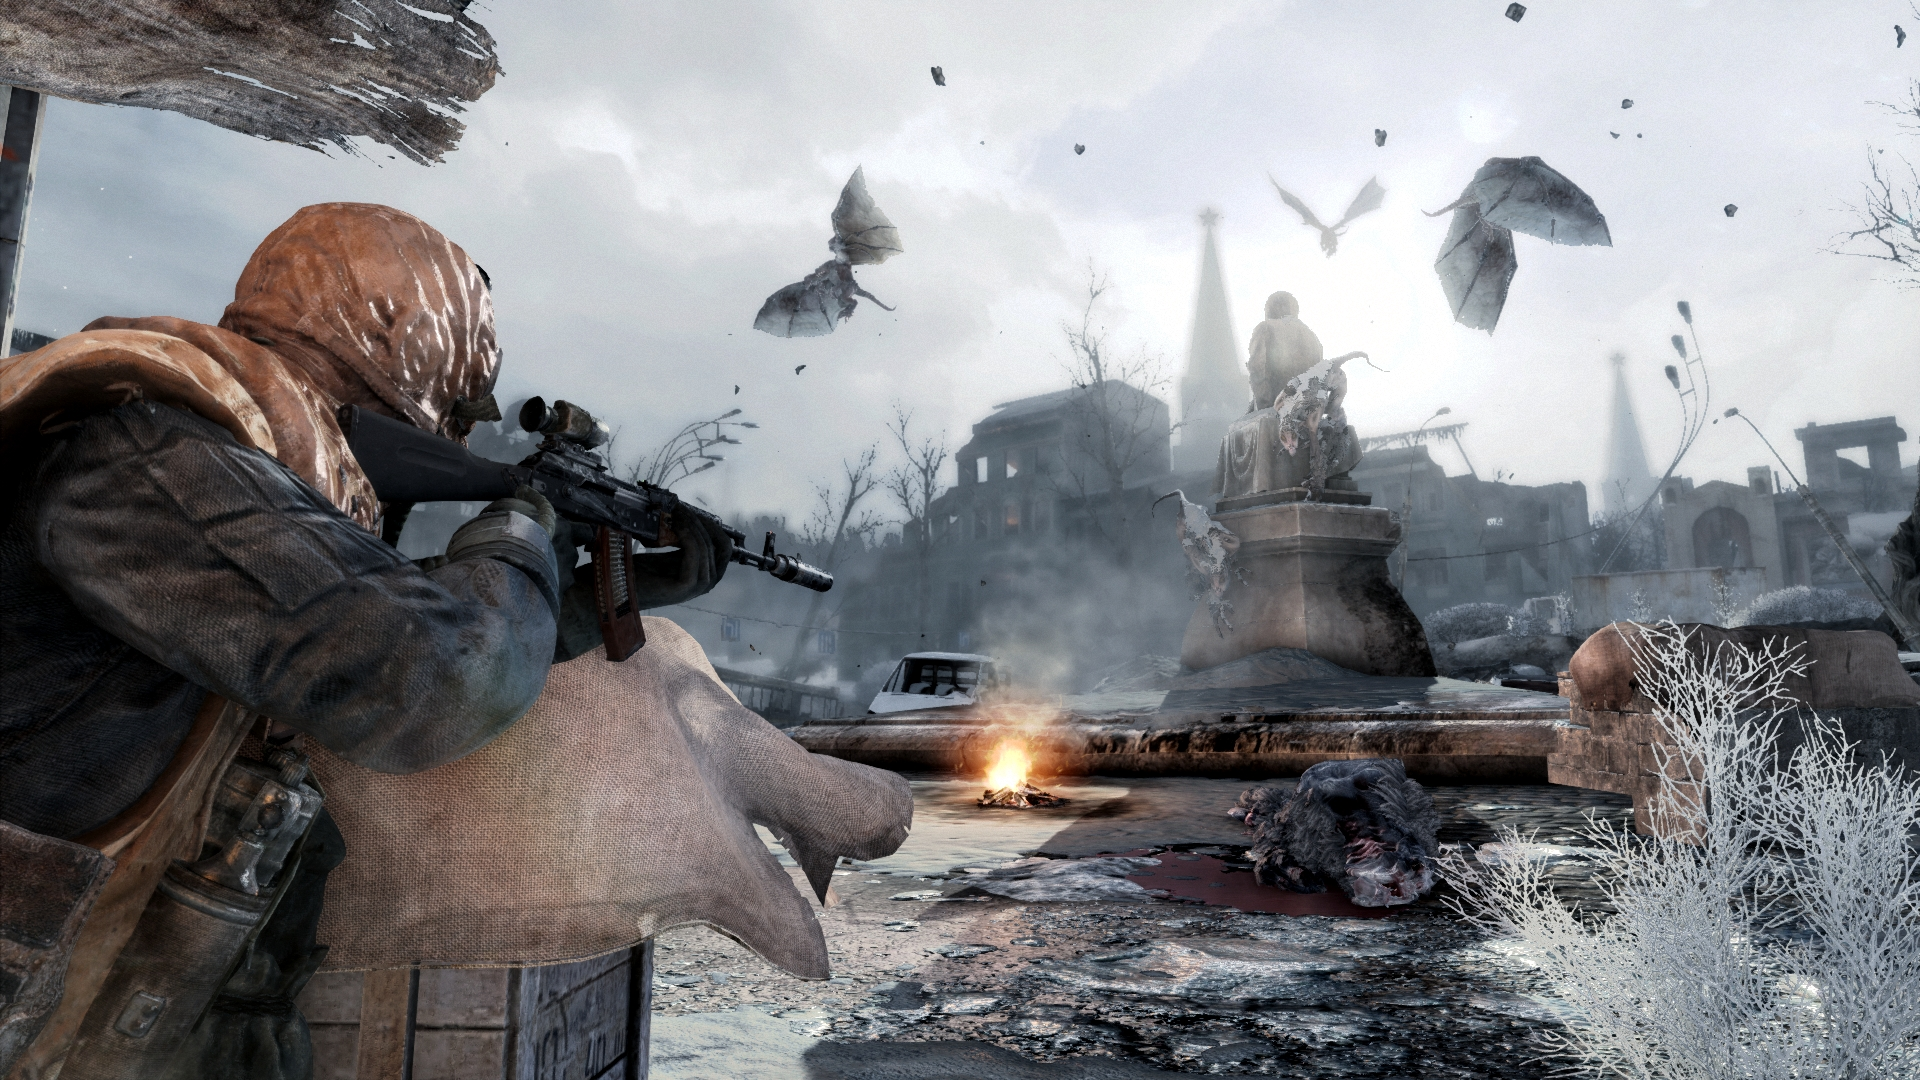 Metro 2033 Redux System Requirements - Can I Run It